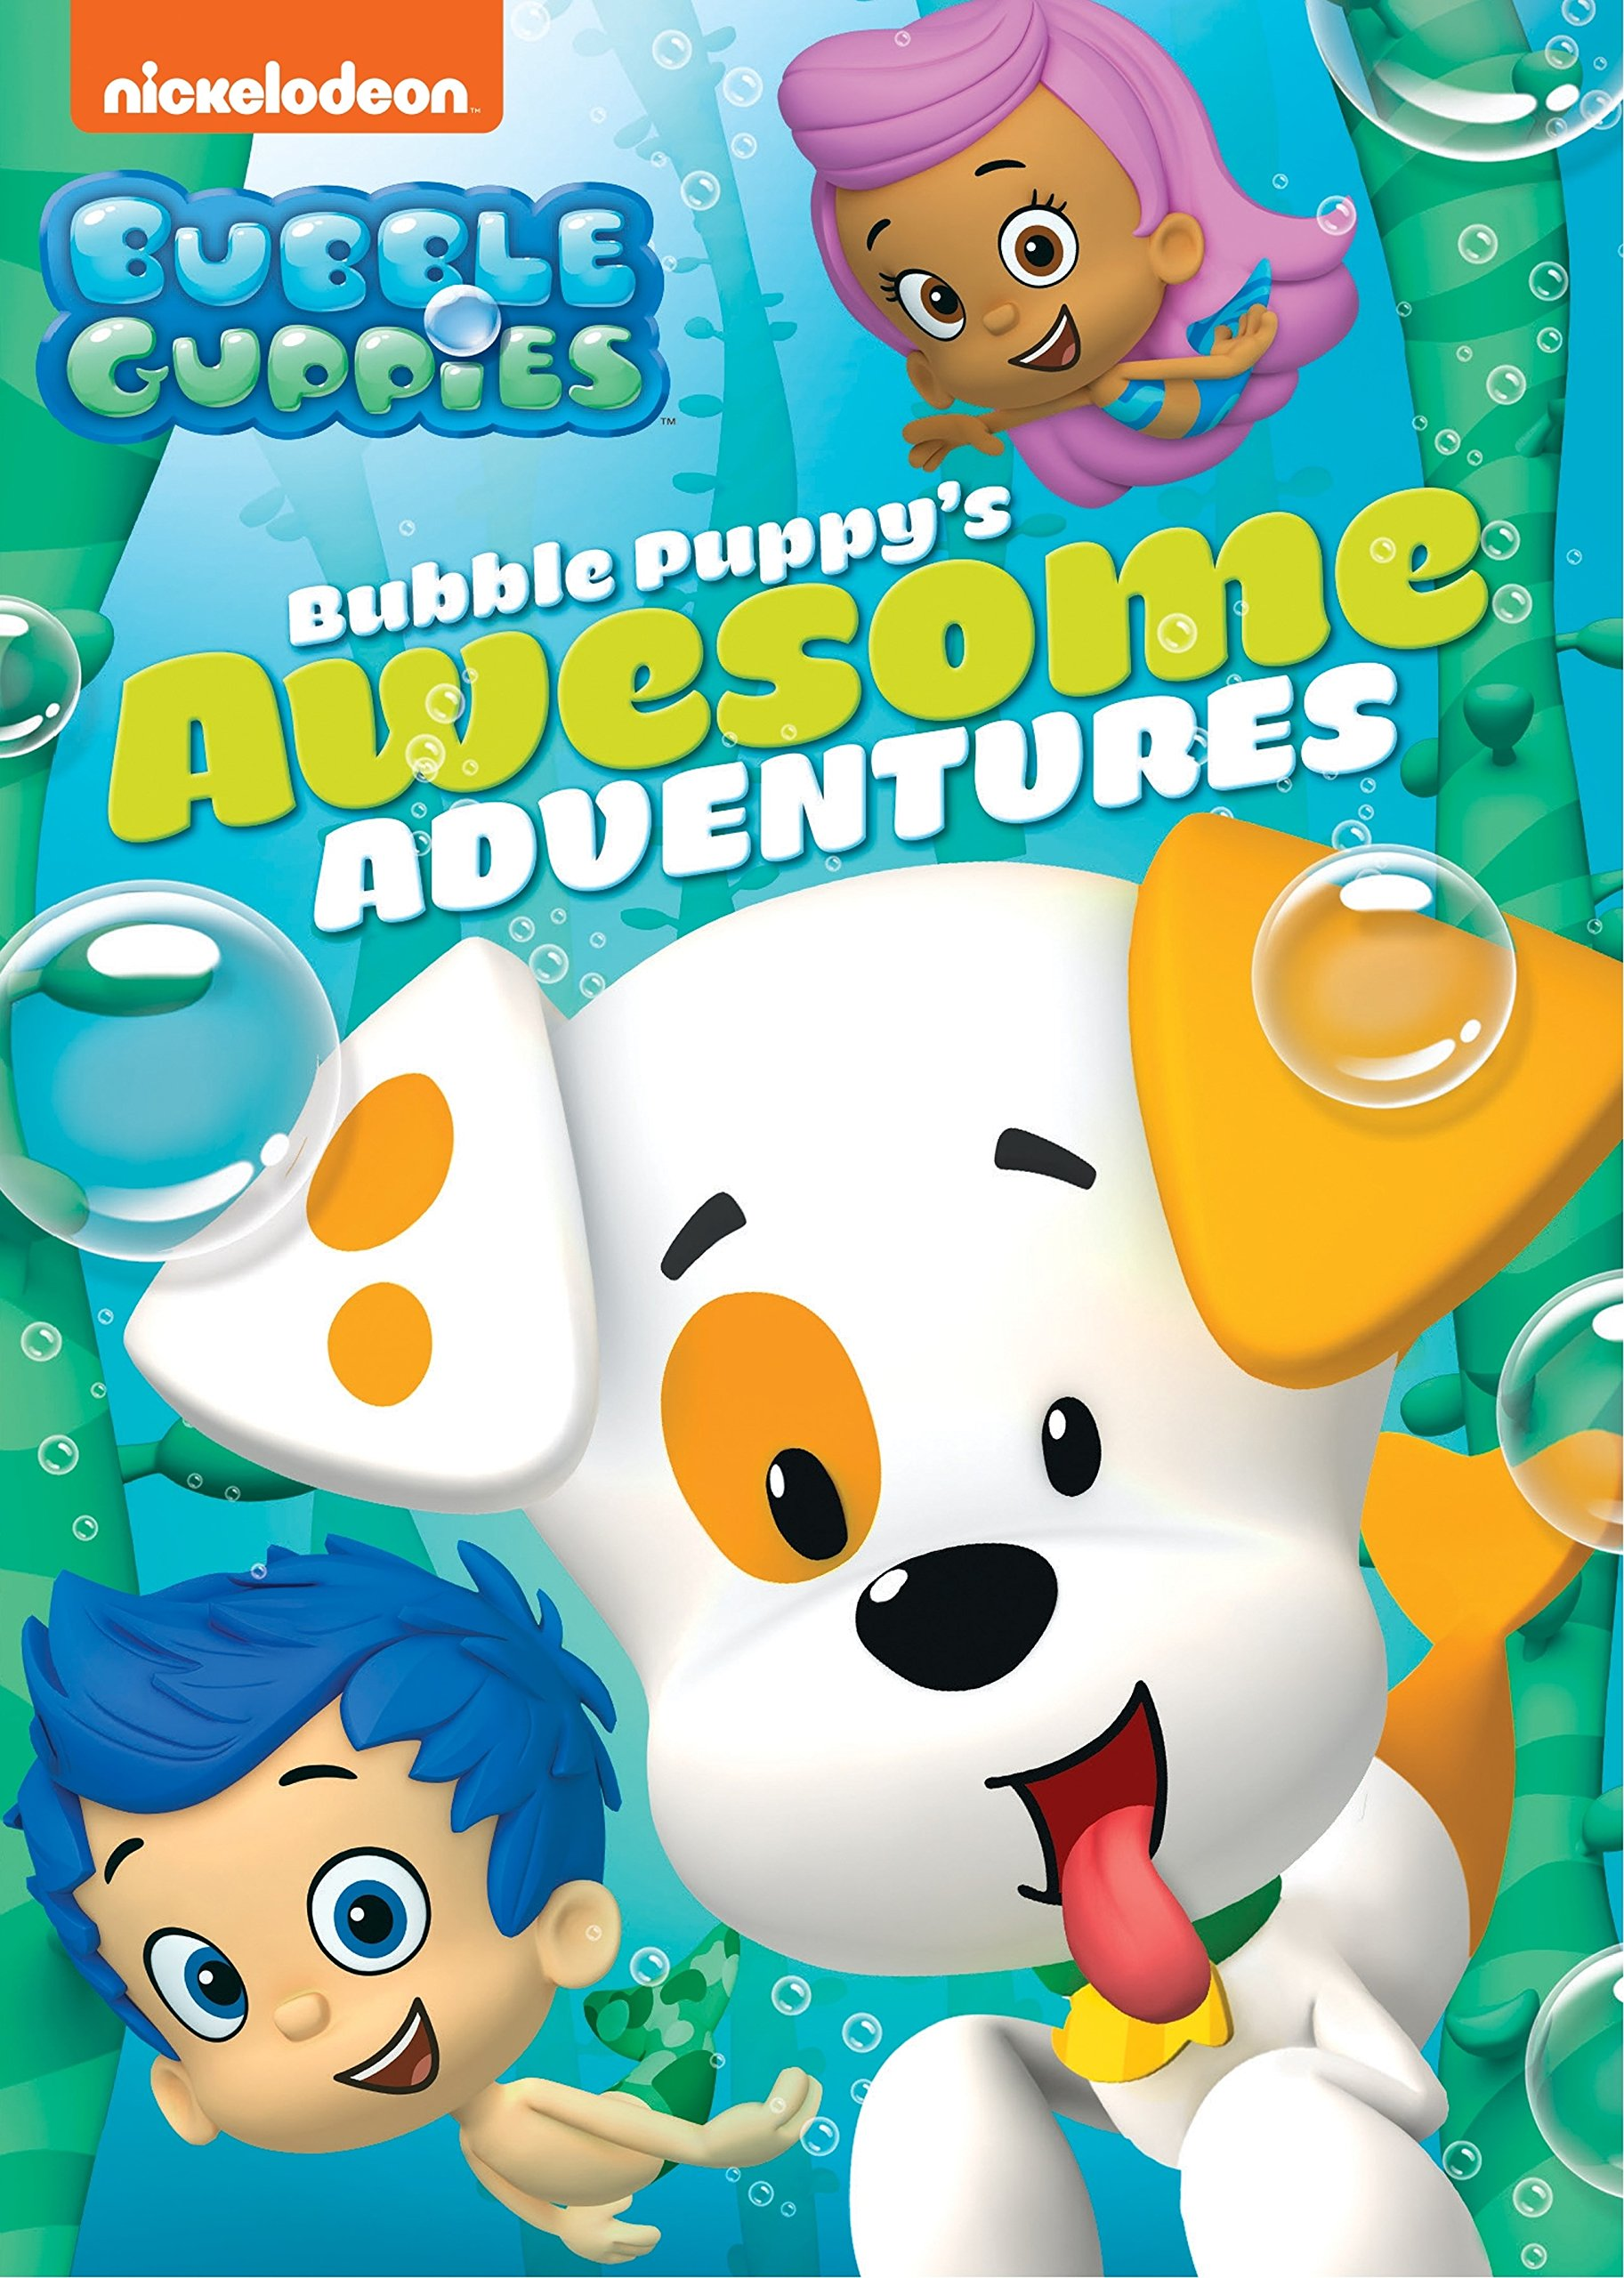 DVD : Bubble Guppies: Bubble Puppy's Awesome Adventures (Dubbed, Widescreen, Amaray Case)